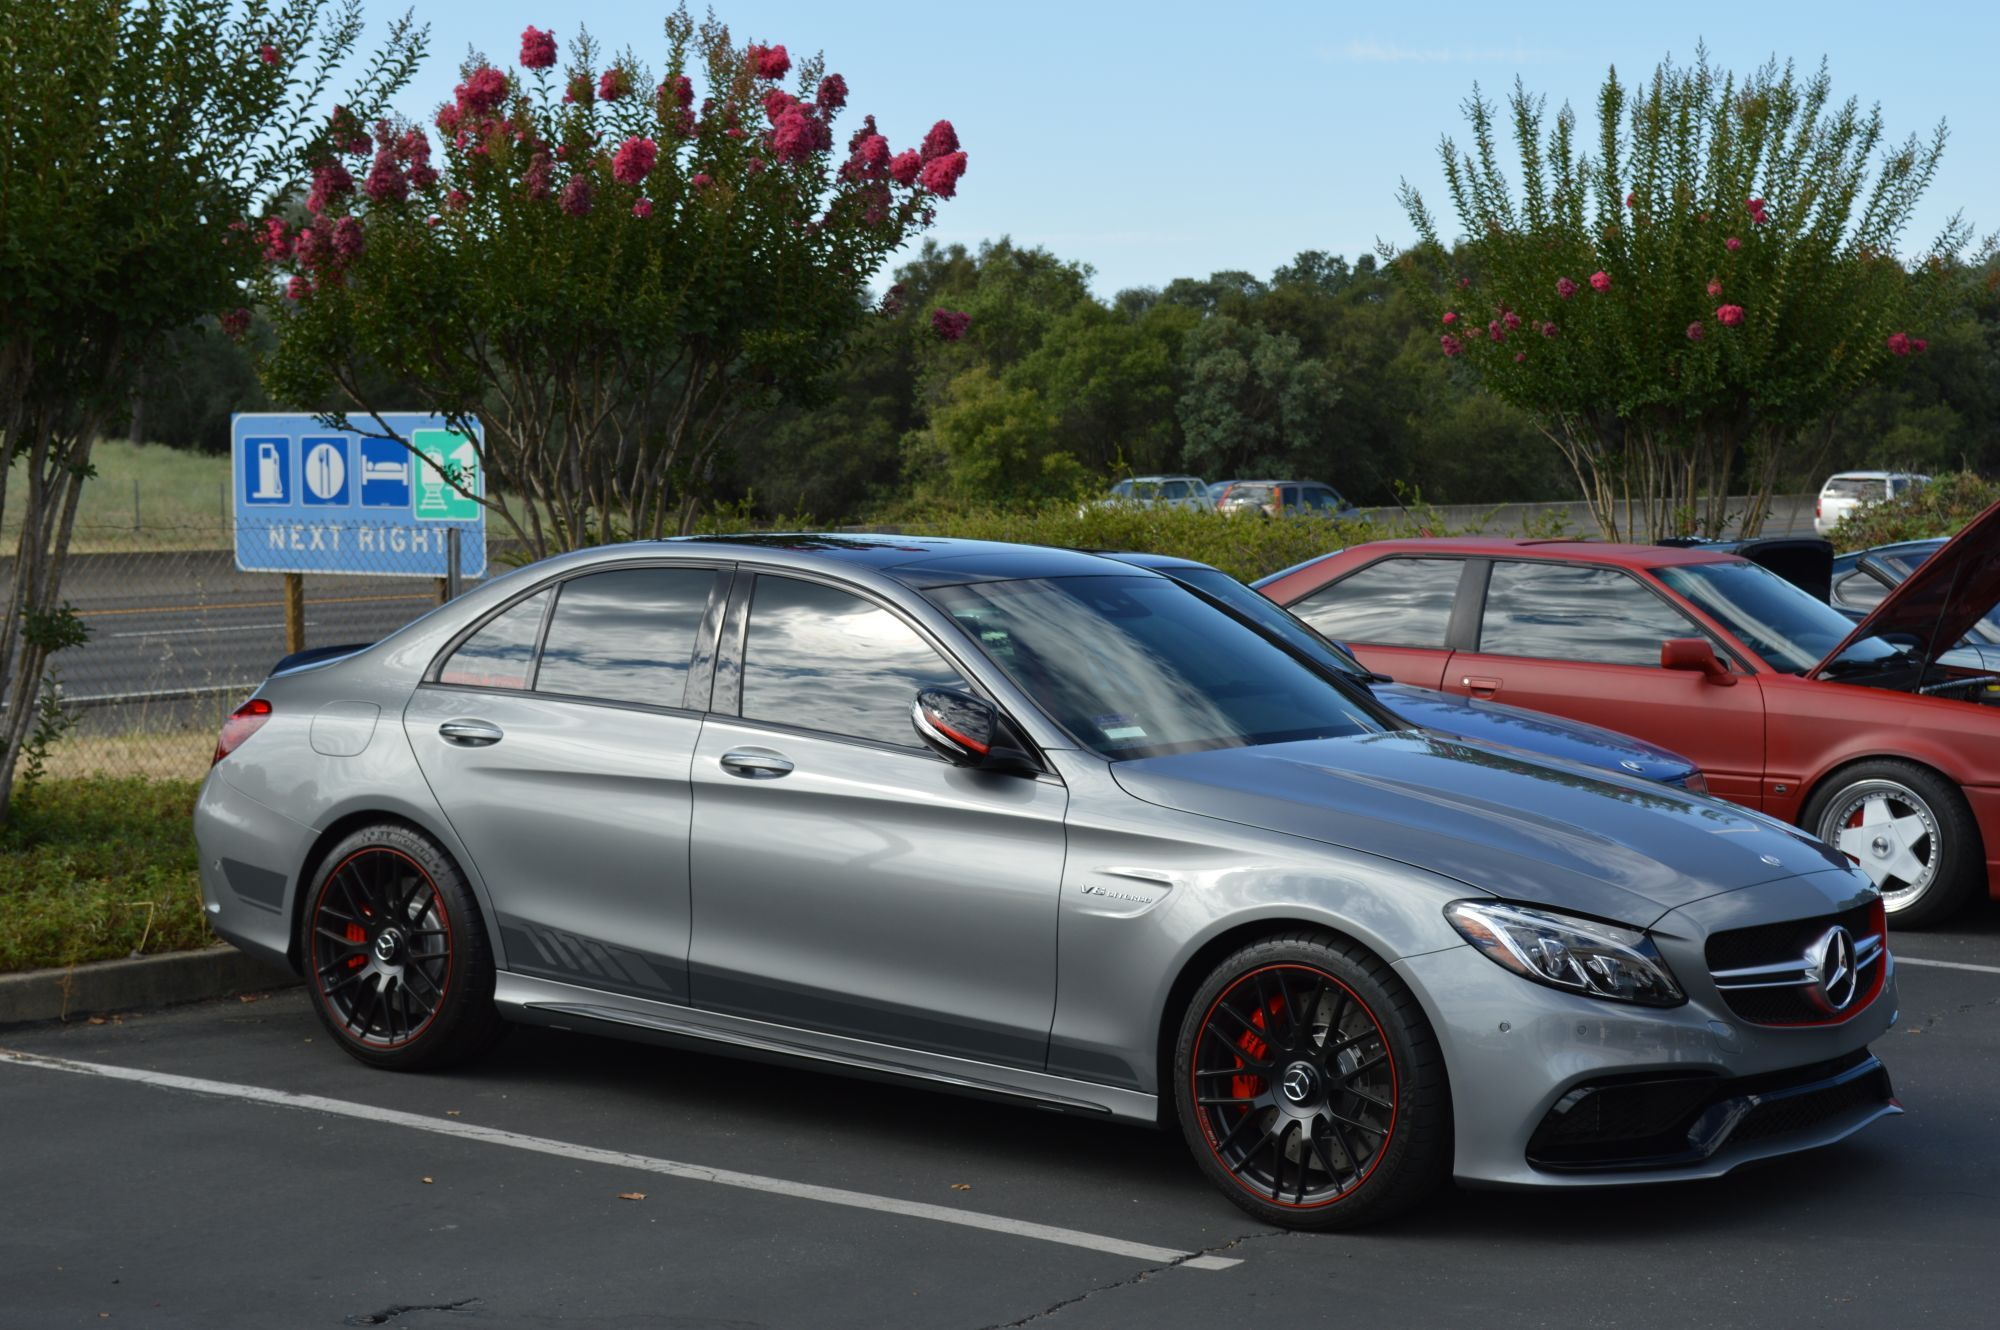 The official w205 c63 c63 s photo thread page 6 mbworld org